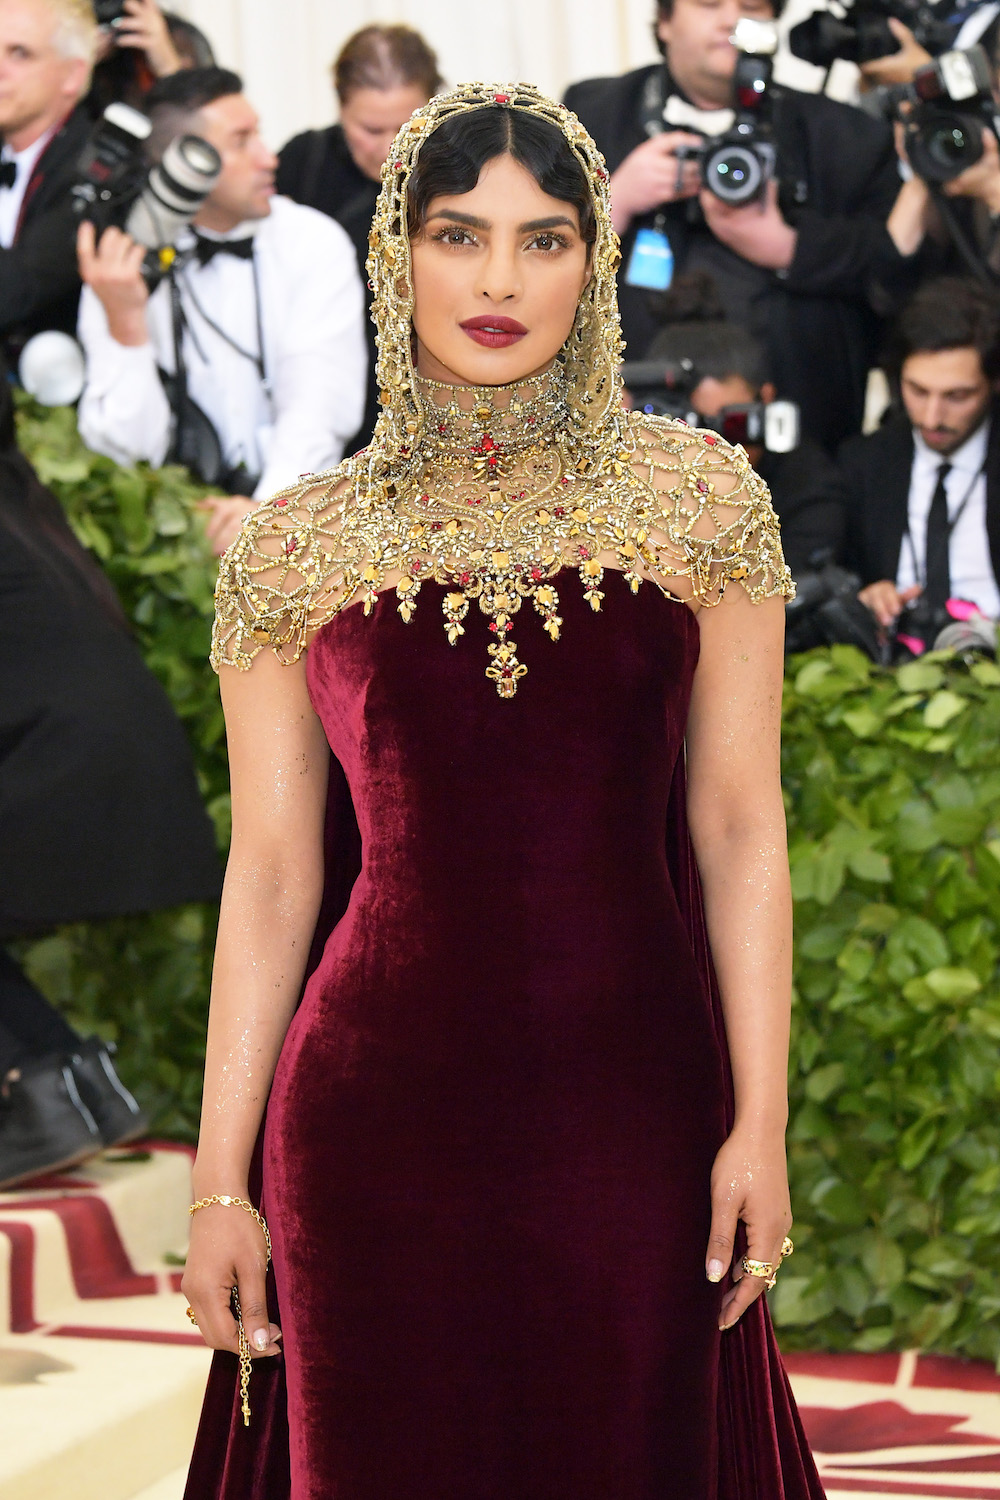 It's Official: We're Crowning Priyanka Chopra with Beauty Icon Status